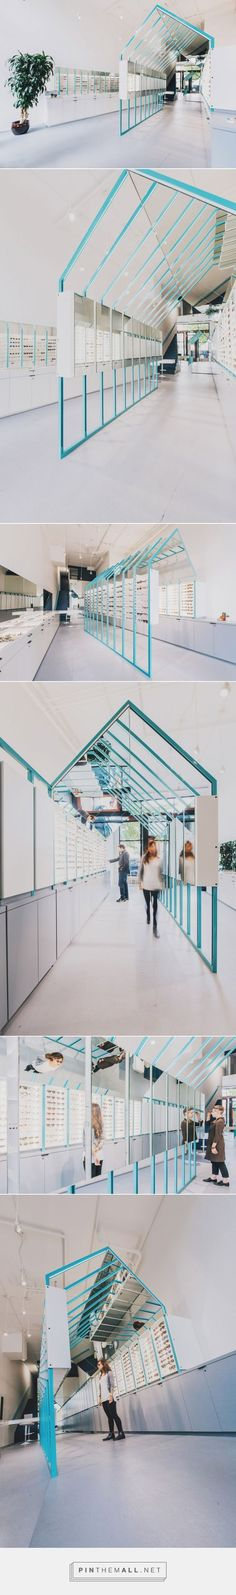 Eyeglasses are displayed within a steel-framed enclosure that resembles a house in this Seattle eyewear shop by local firm Best Practice Architecture. Design Set, Stand Design, Display Design, Booth Design, Signage Design, Design Commercial, Commercial Interiors, Visual Merchandising, Eyewear Shop